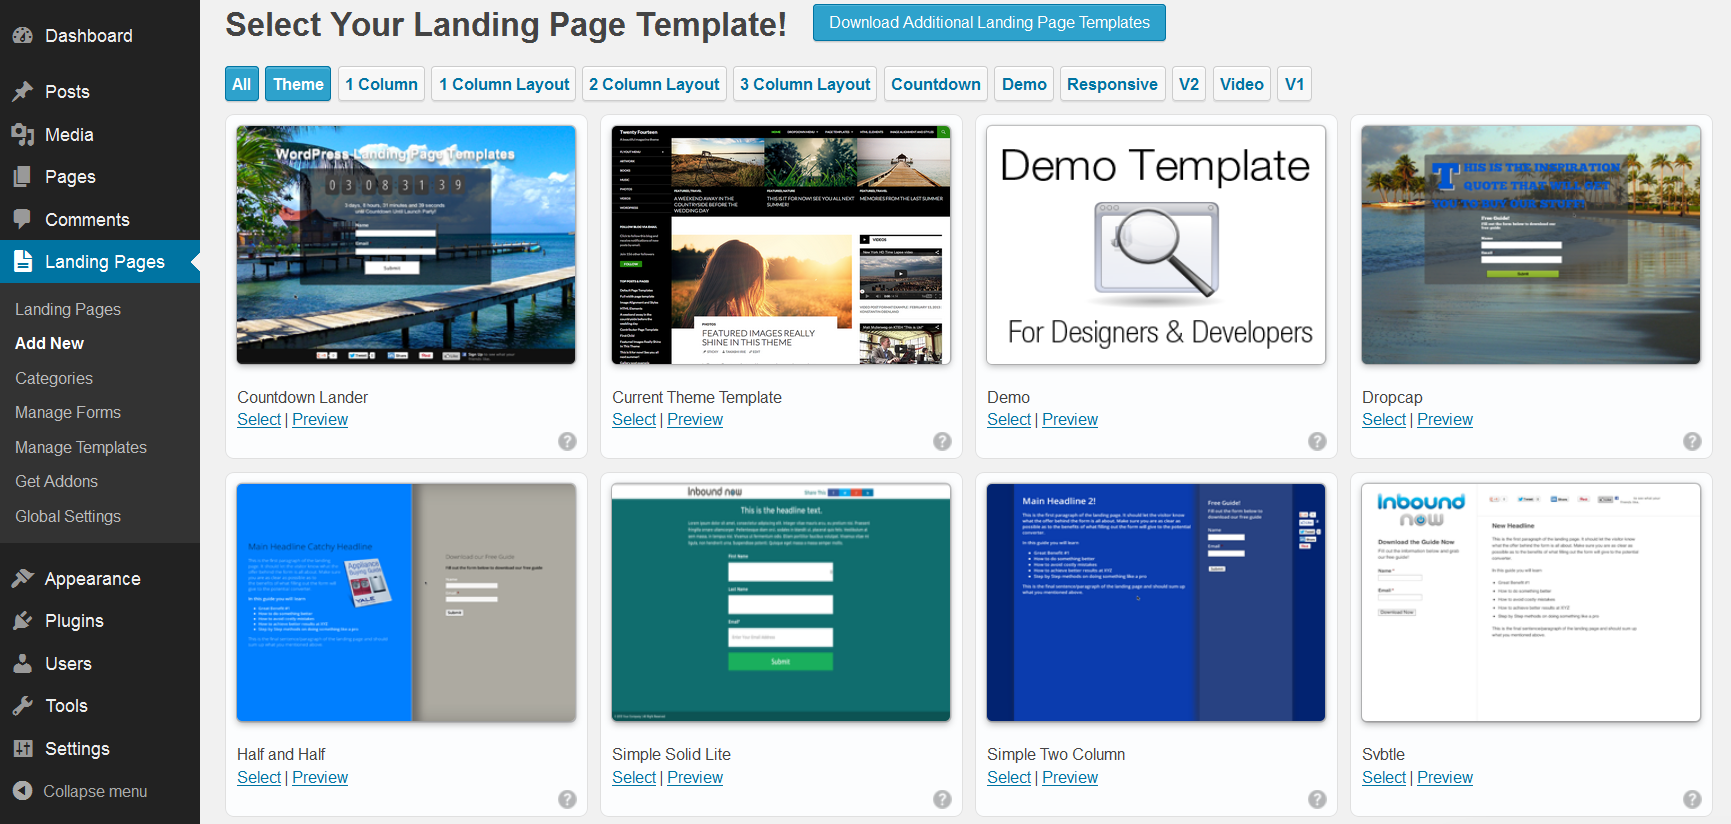 Overview of landing page templates